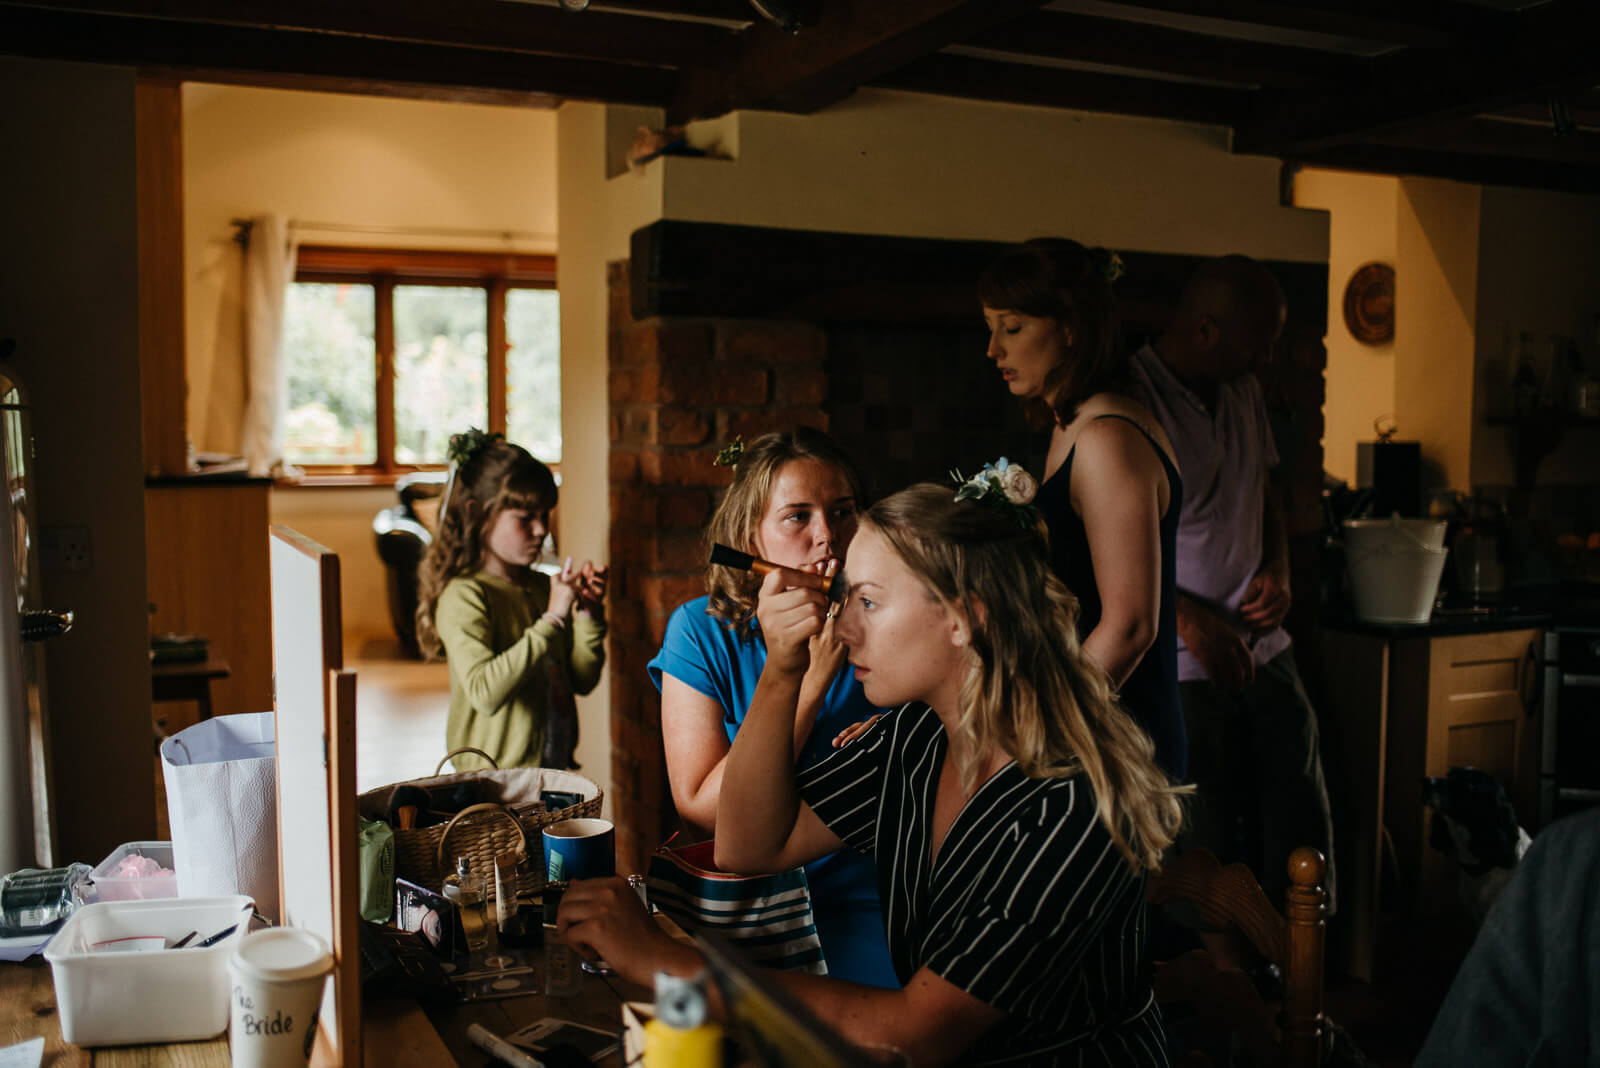 Bridesmaids getting ready at the brides family farmhouse in Shropshire